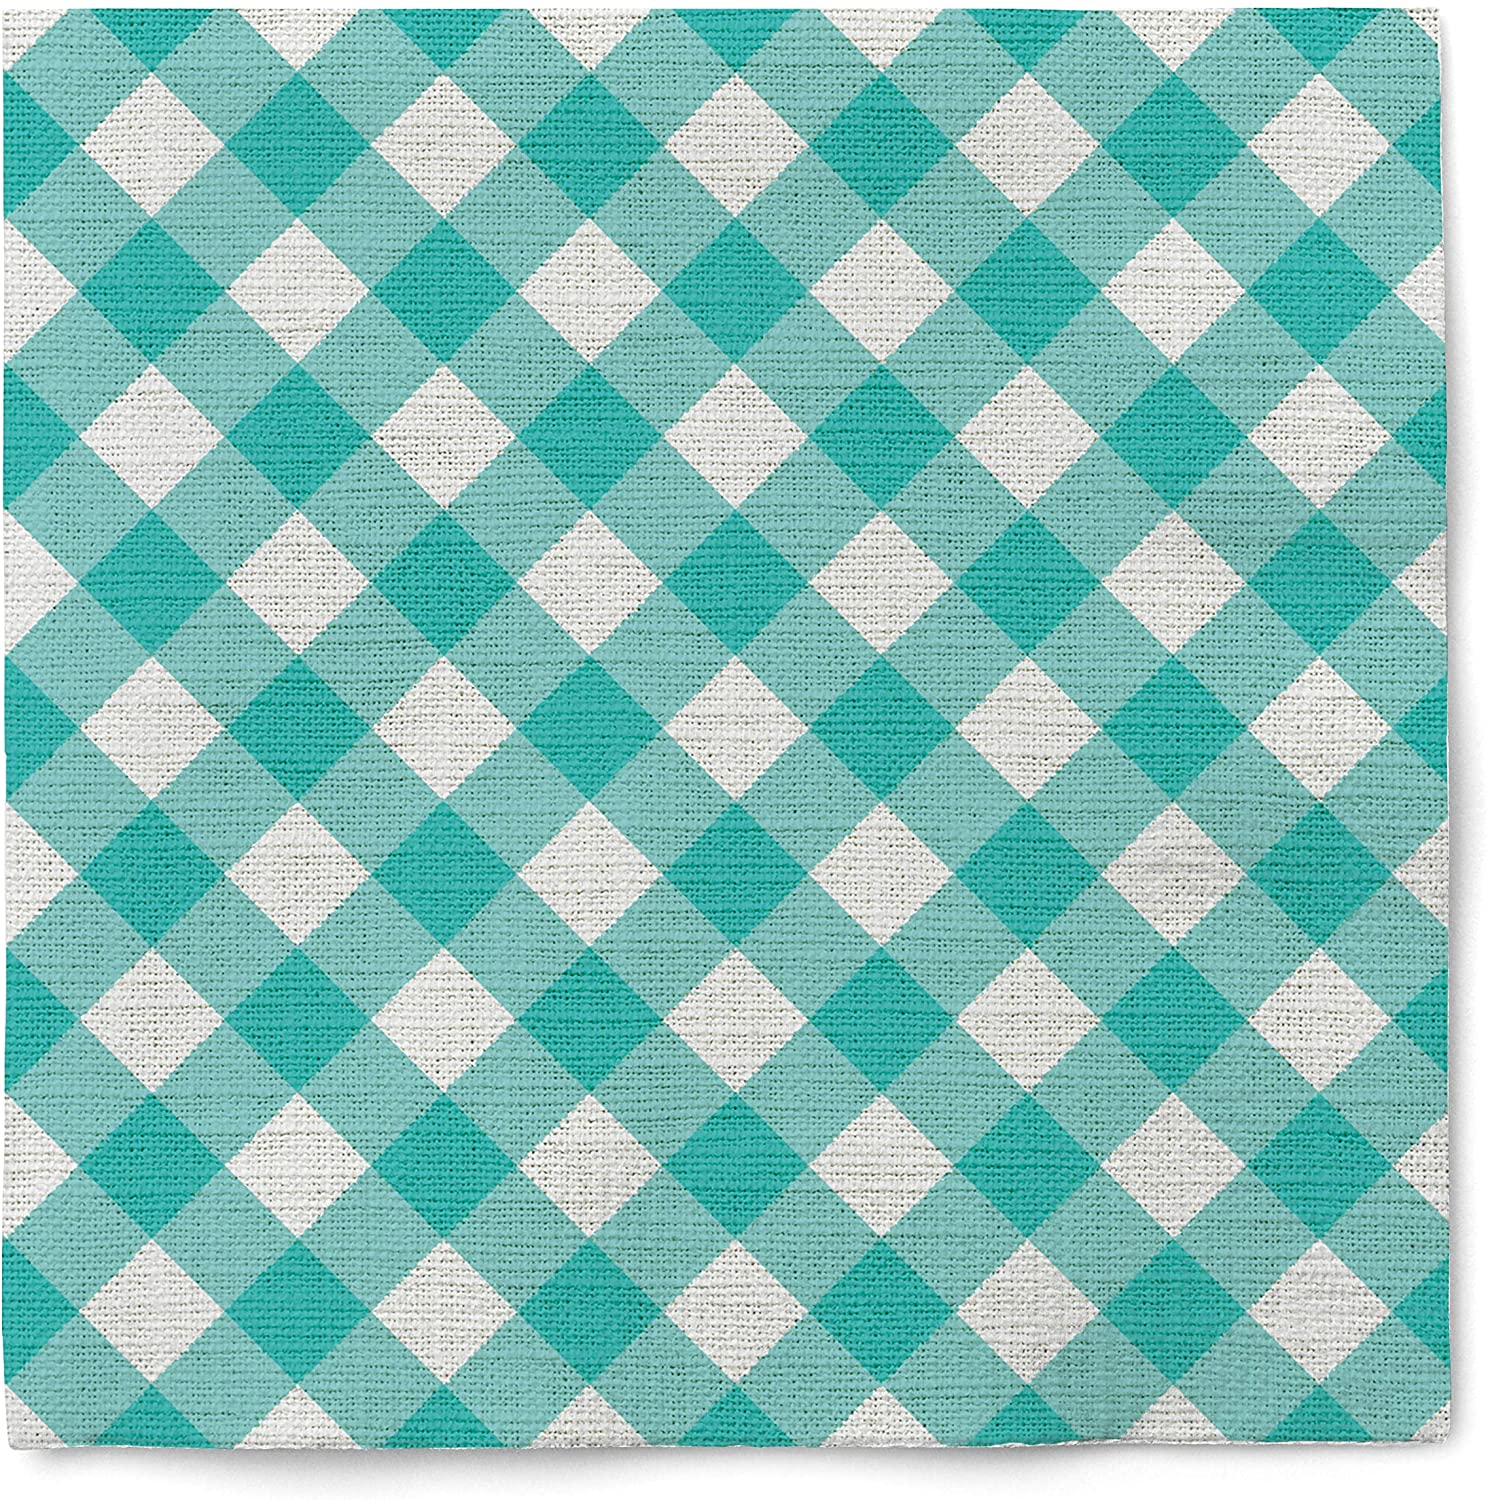 20 Paper Party Napkins In The Park Pack of 20 3 Ply floral Tissue Serviettes